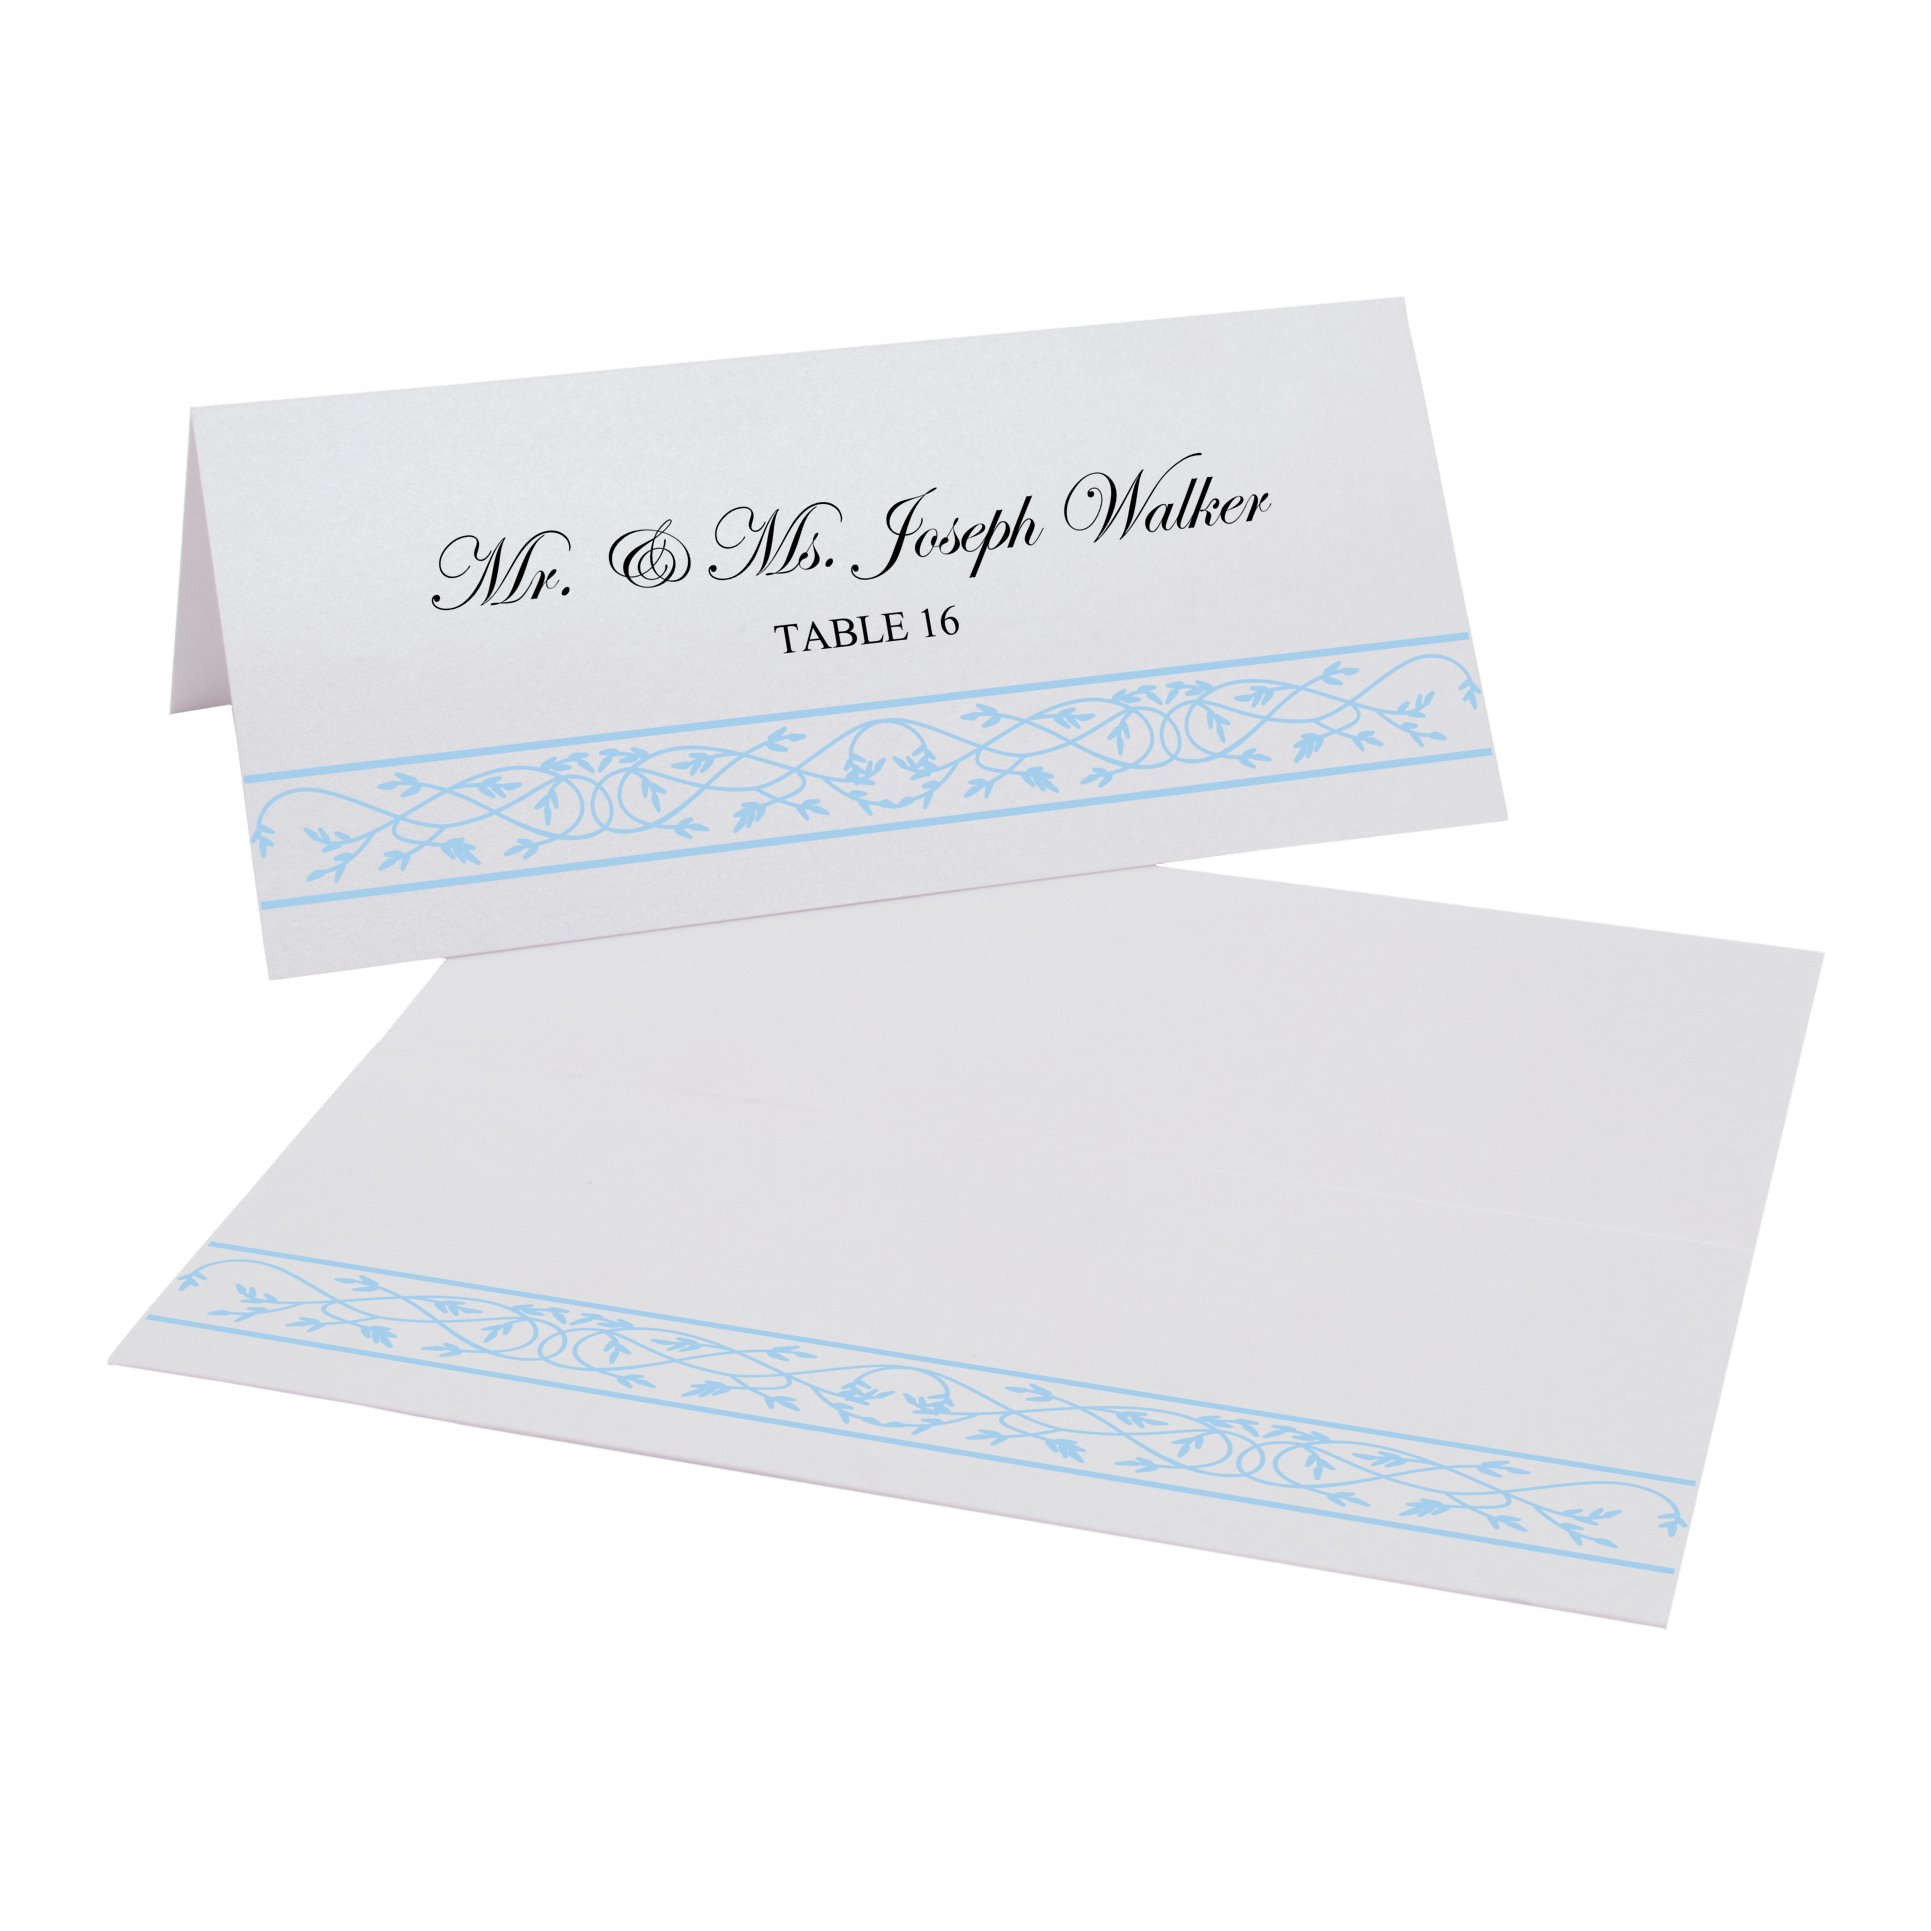 Celtic Leaf Border Easy Print Place Cards, Pearl White, Light Blue, Set of 475 (119 Sheets) by Documents and Designs